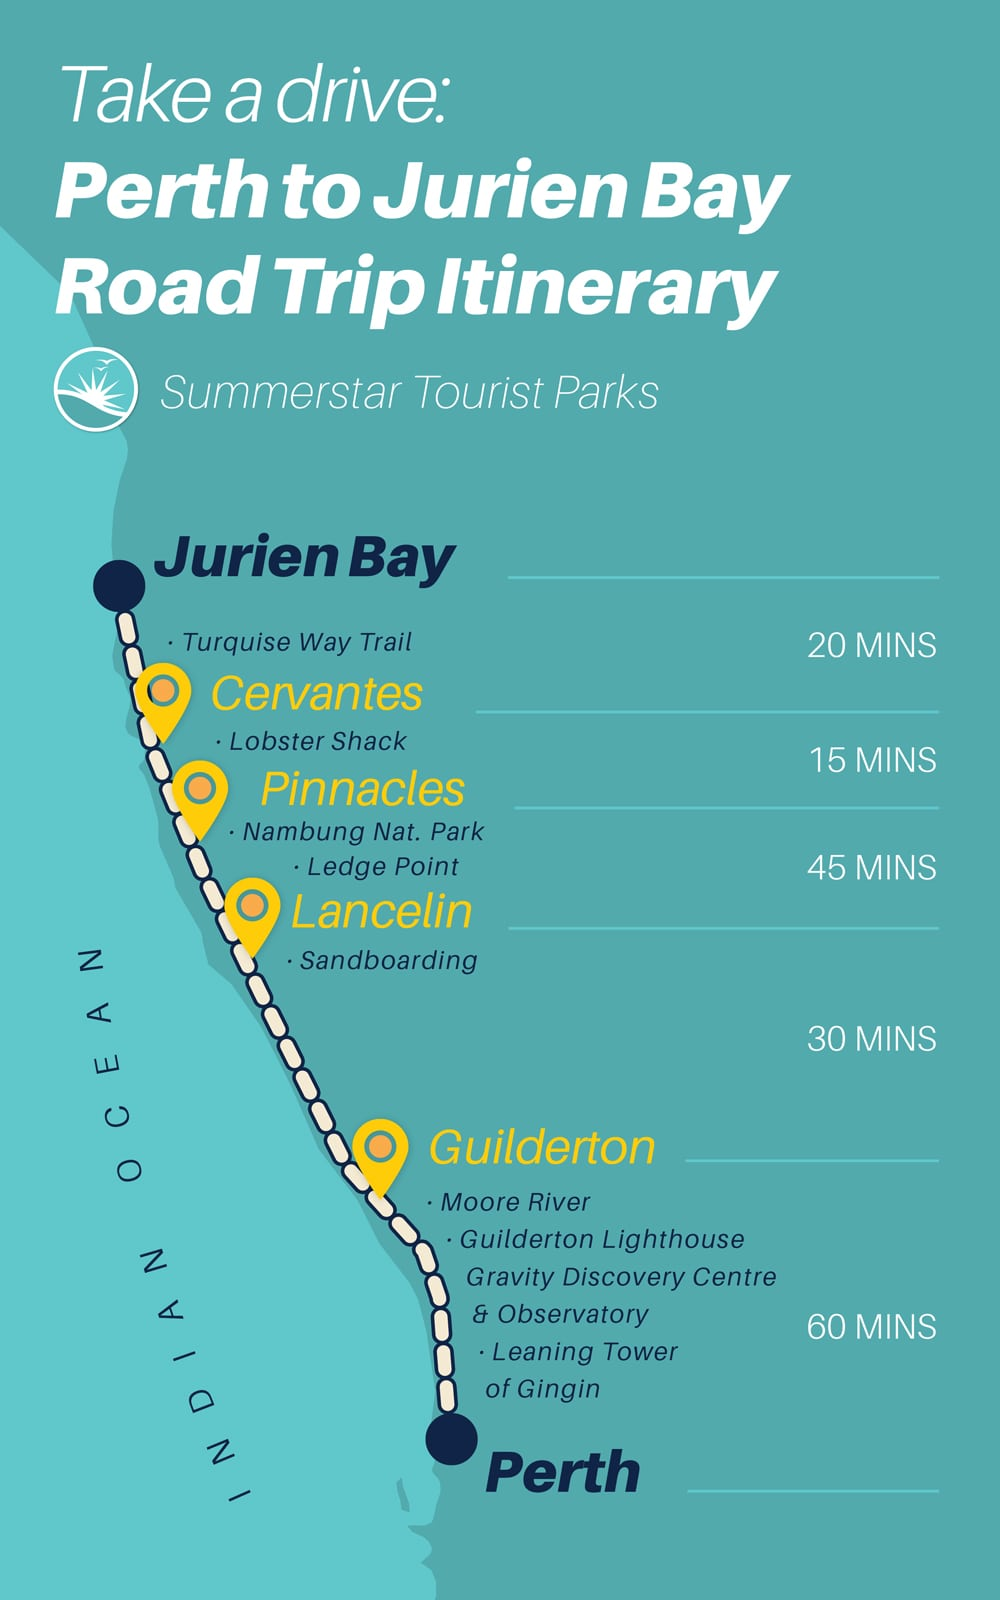 perth to jurien bay road trip itinerary infographic